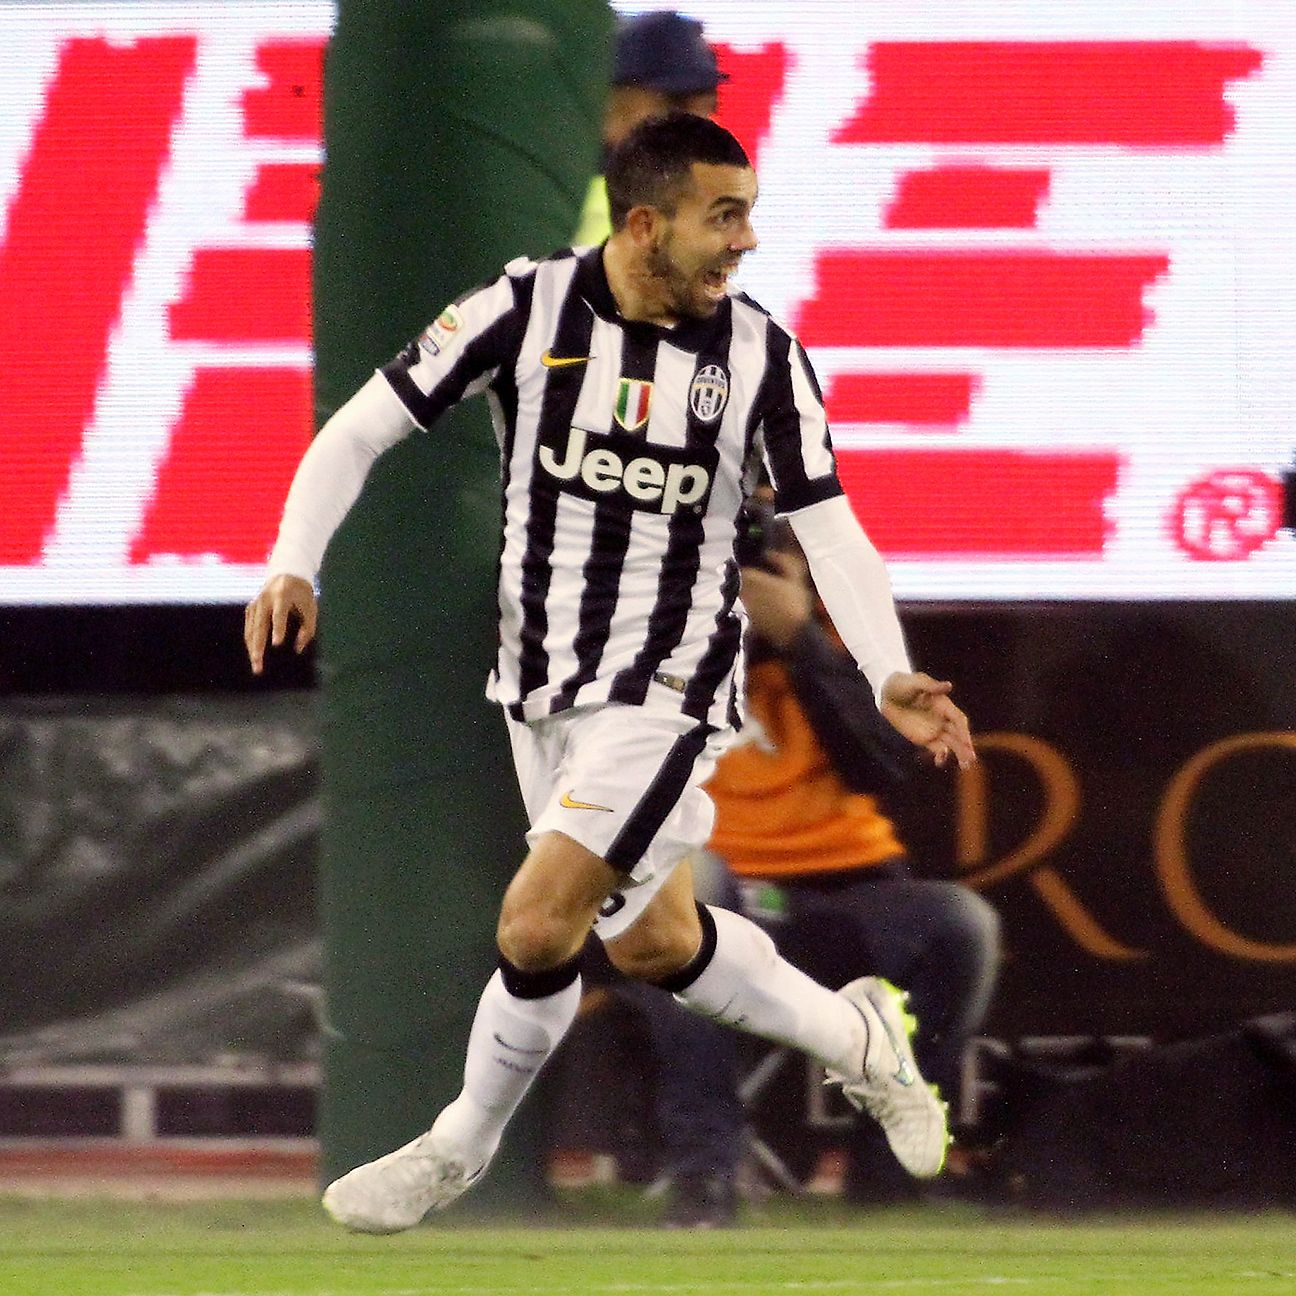 Juve wasted little time in scoring at Cagliari through a third-minute Carlos Tevez goal.